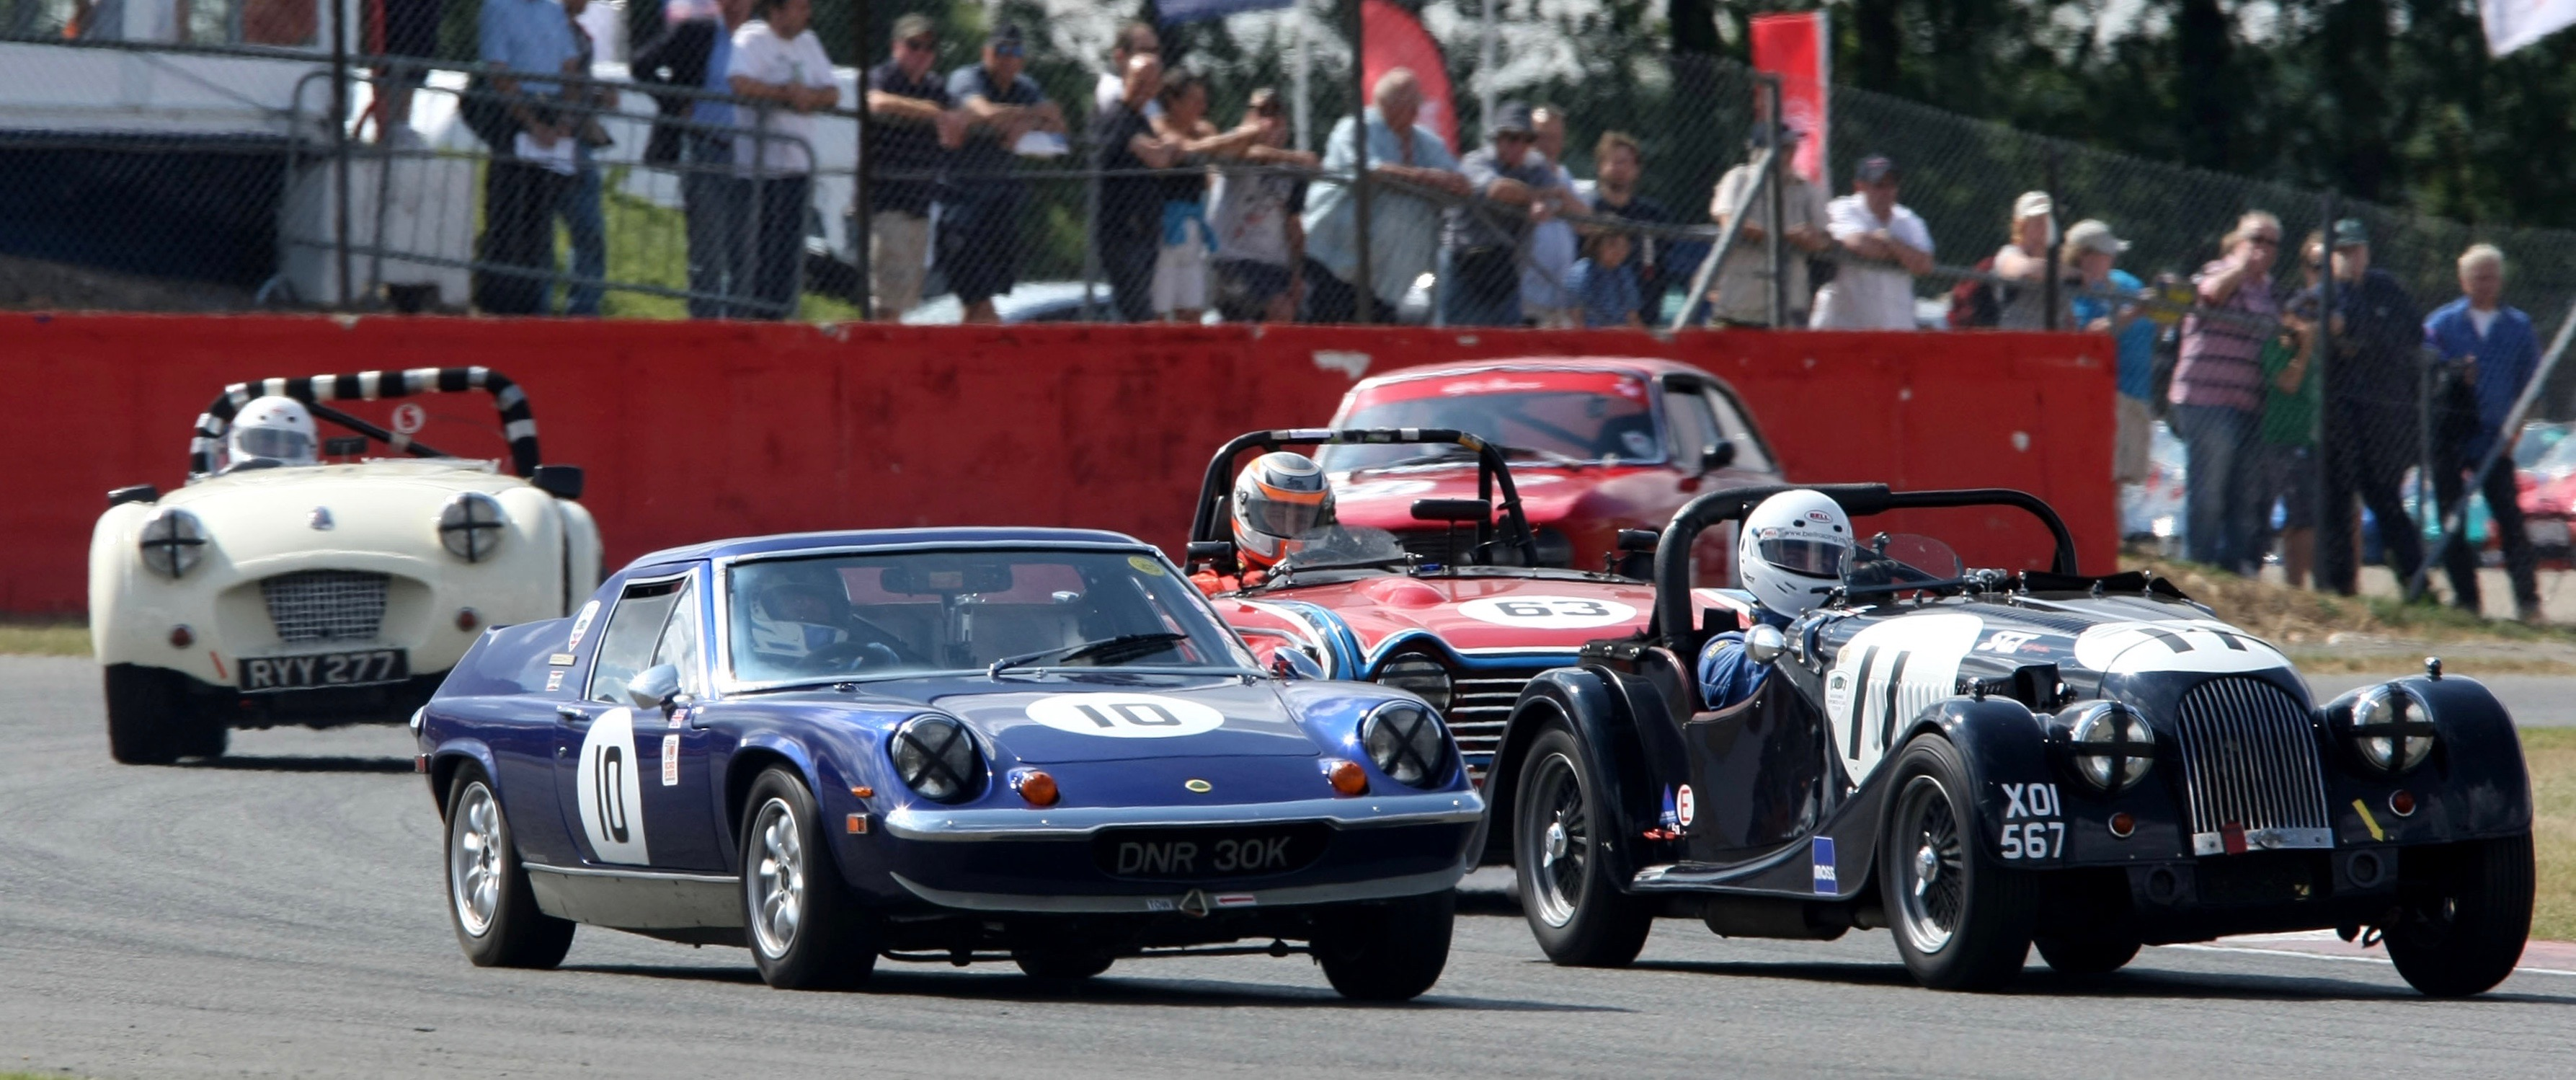 cost ways are available to go vintage racing | ClassicCars.com